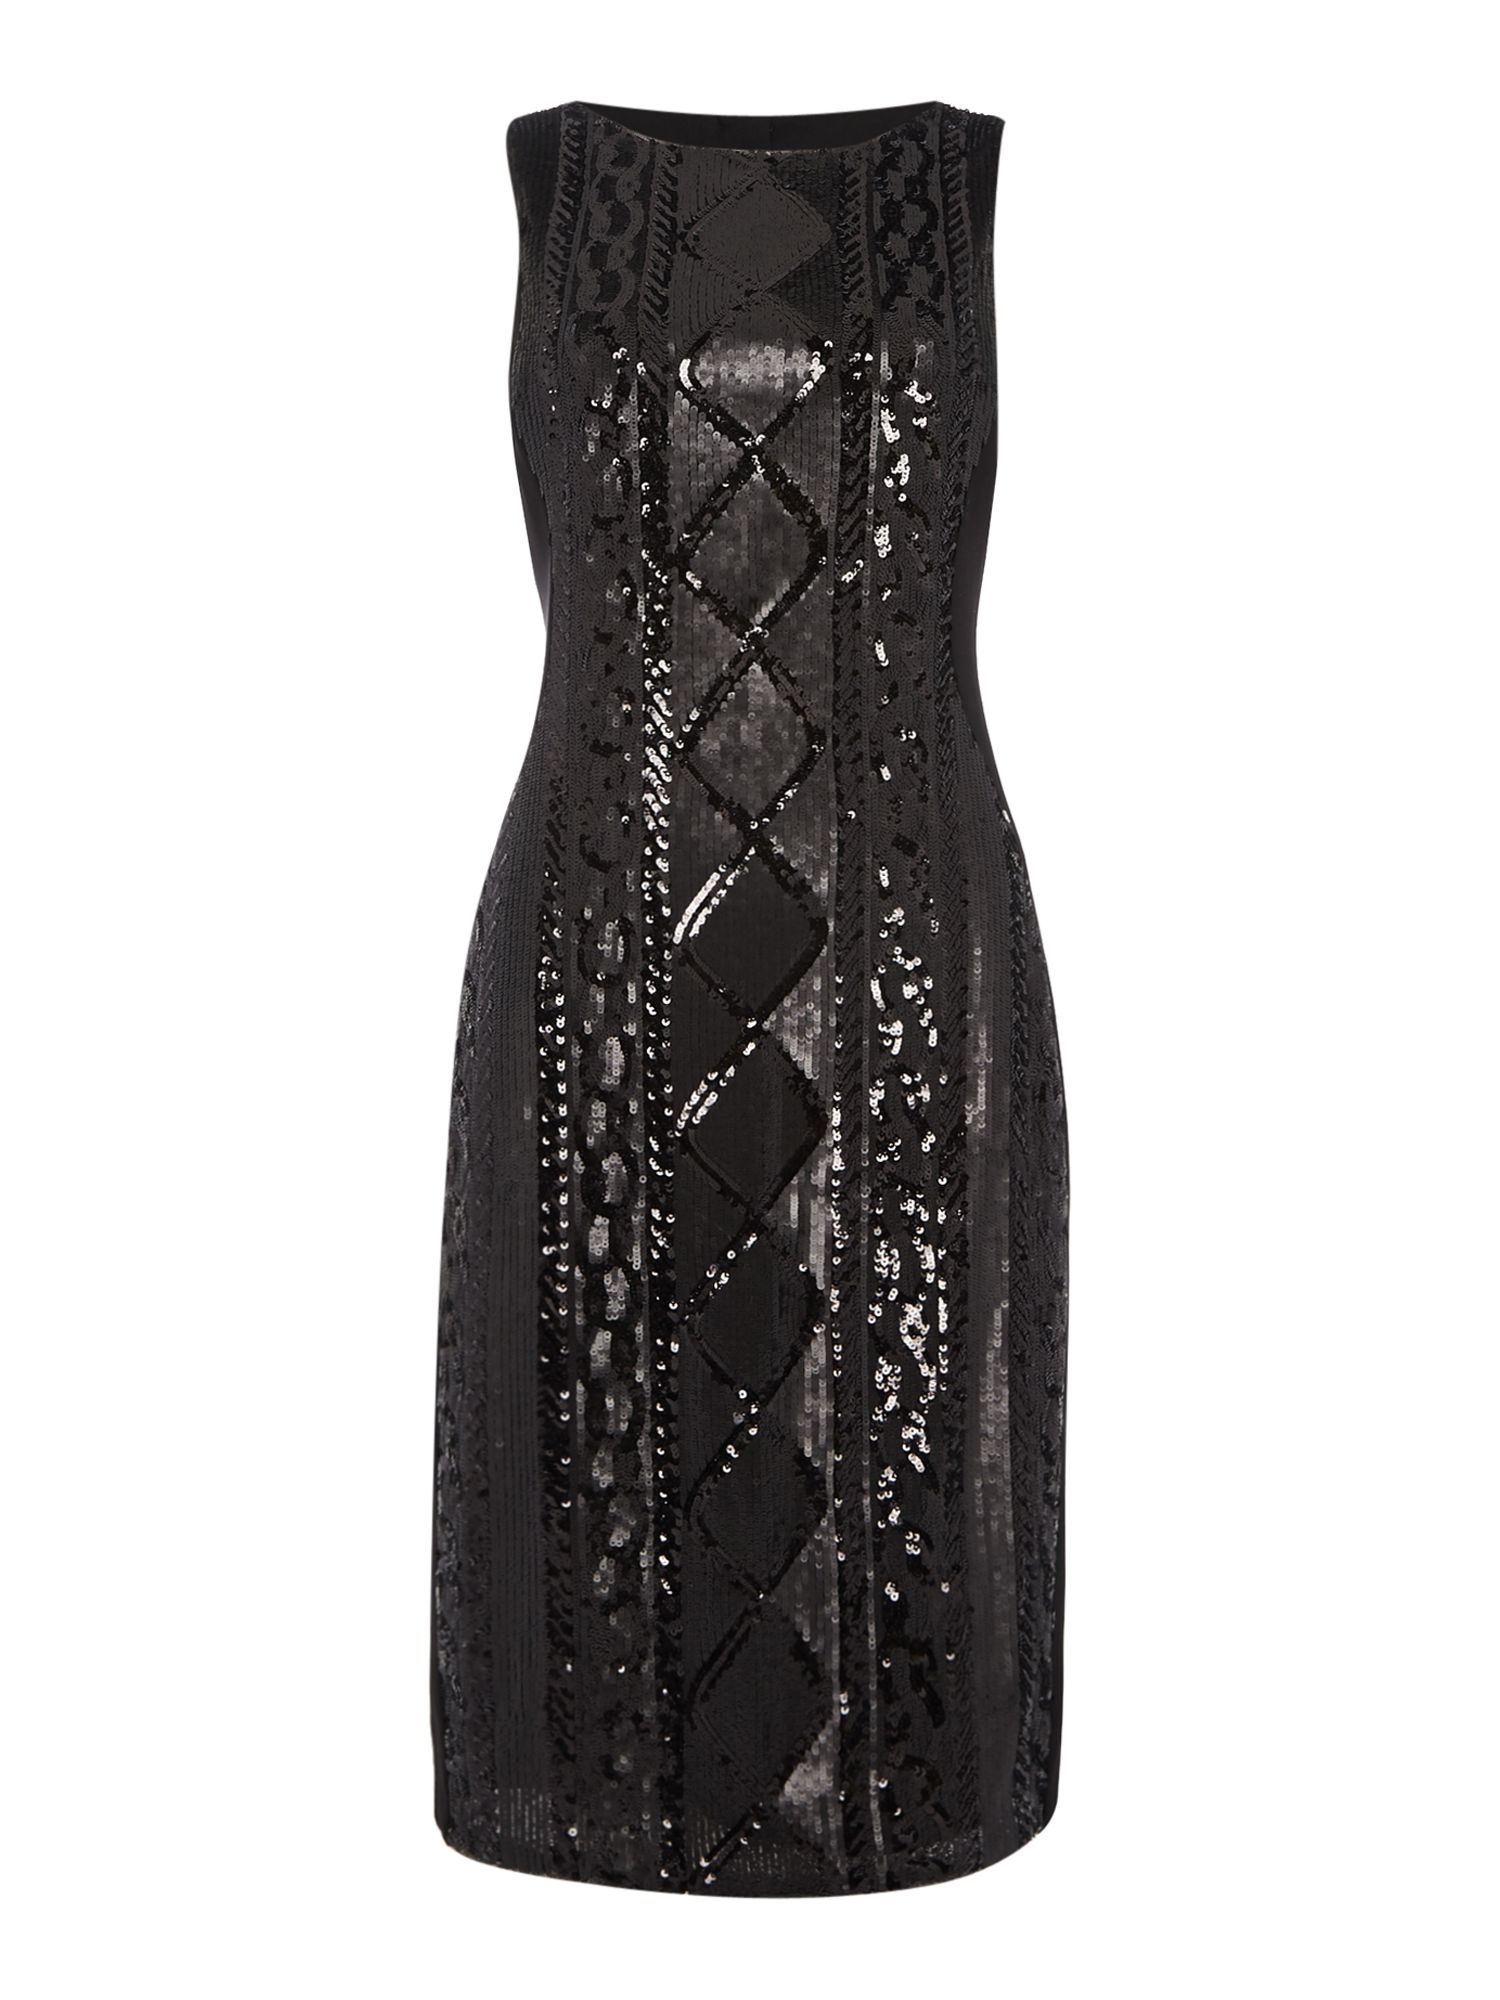 Adrianna Papell Sleeveless Beaded Front Cocktail Dress, Black